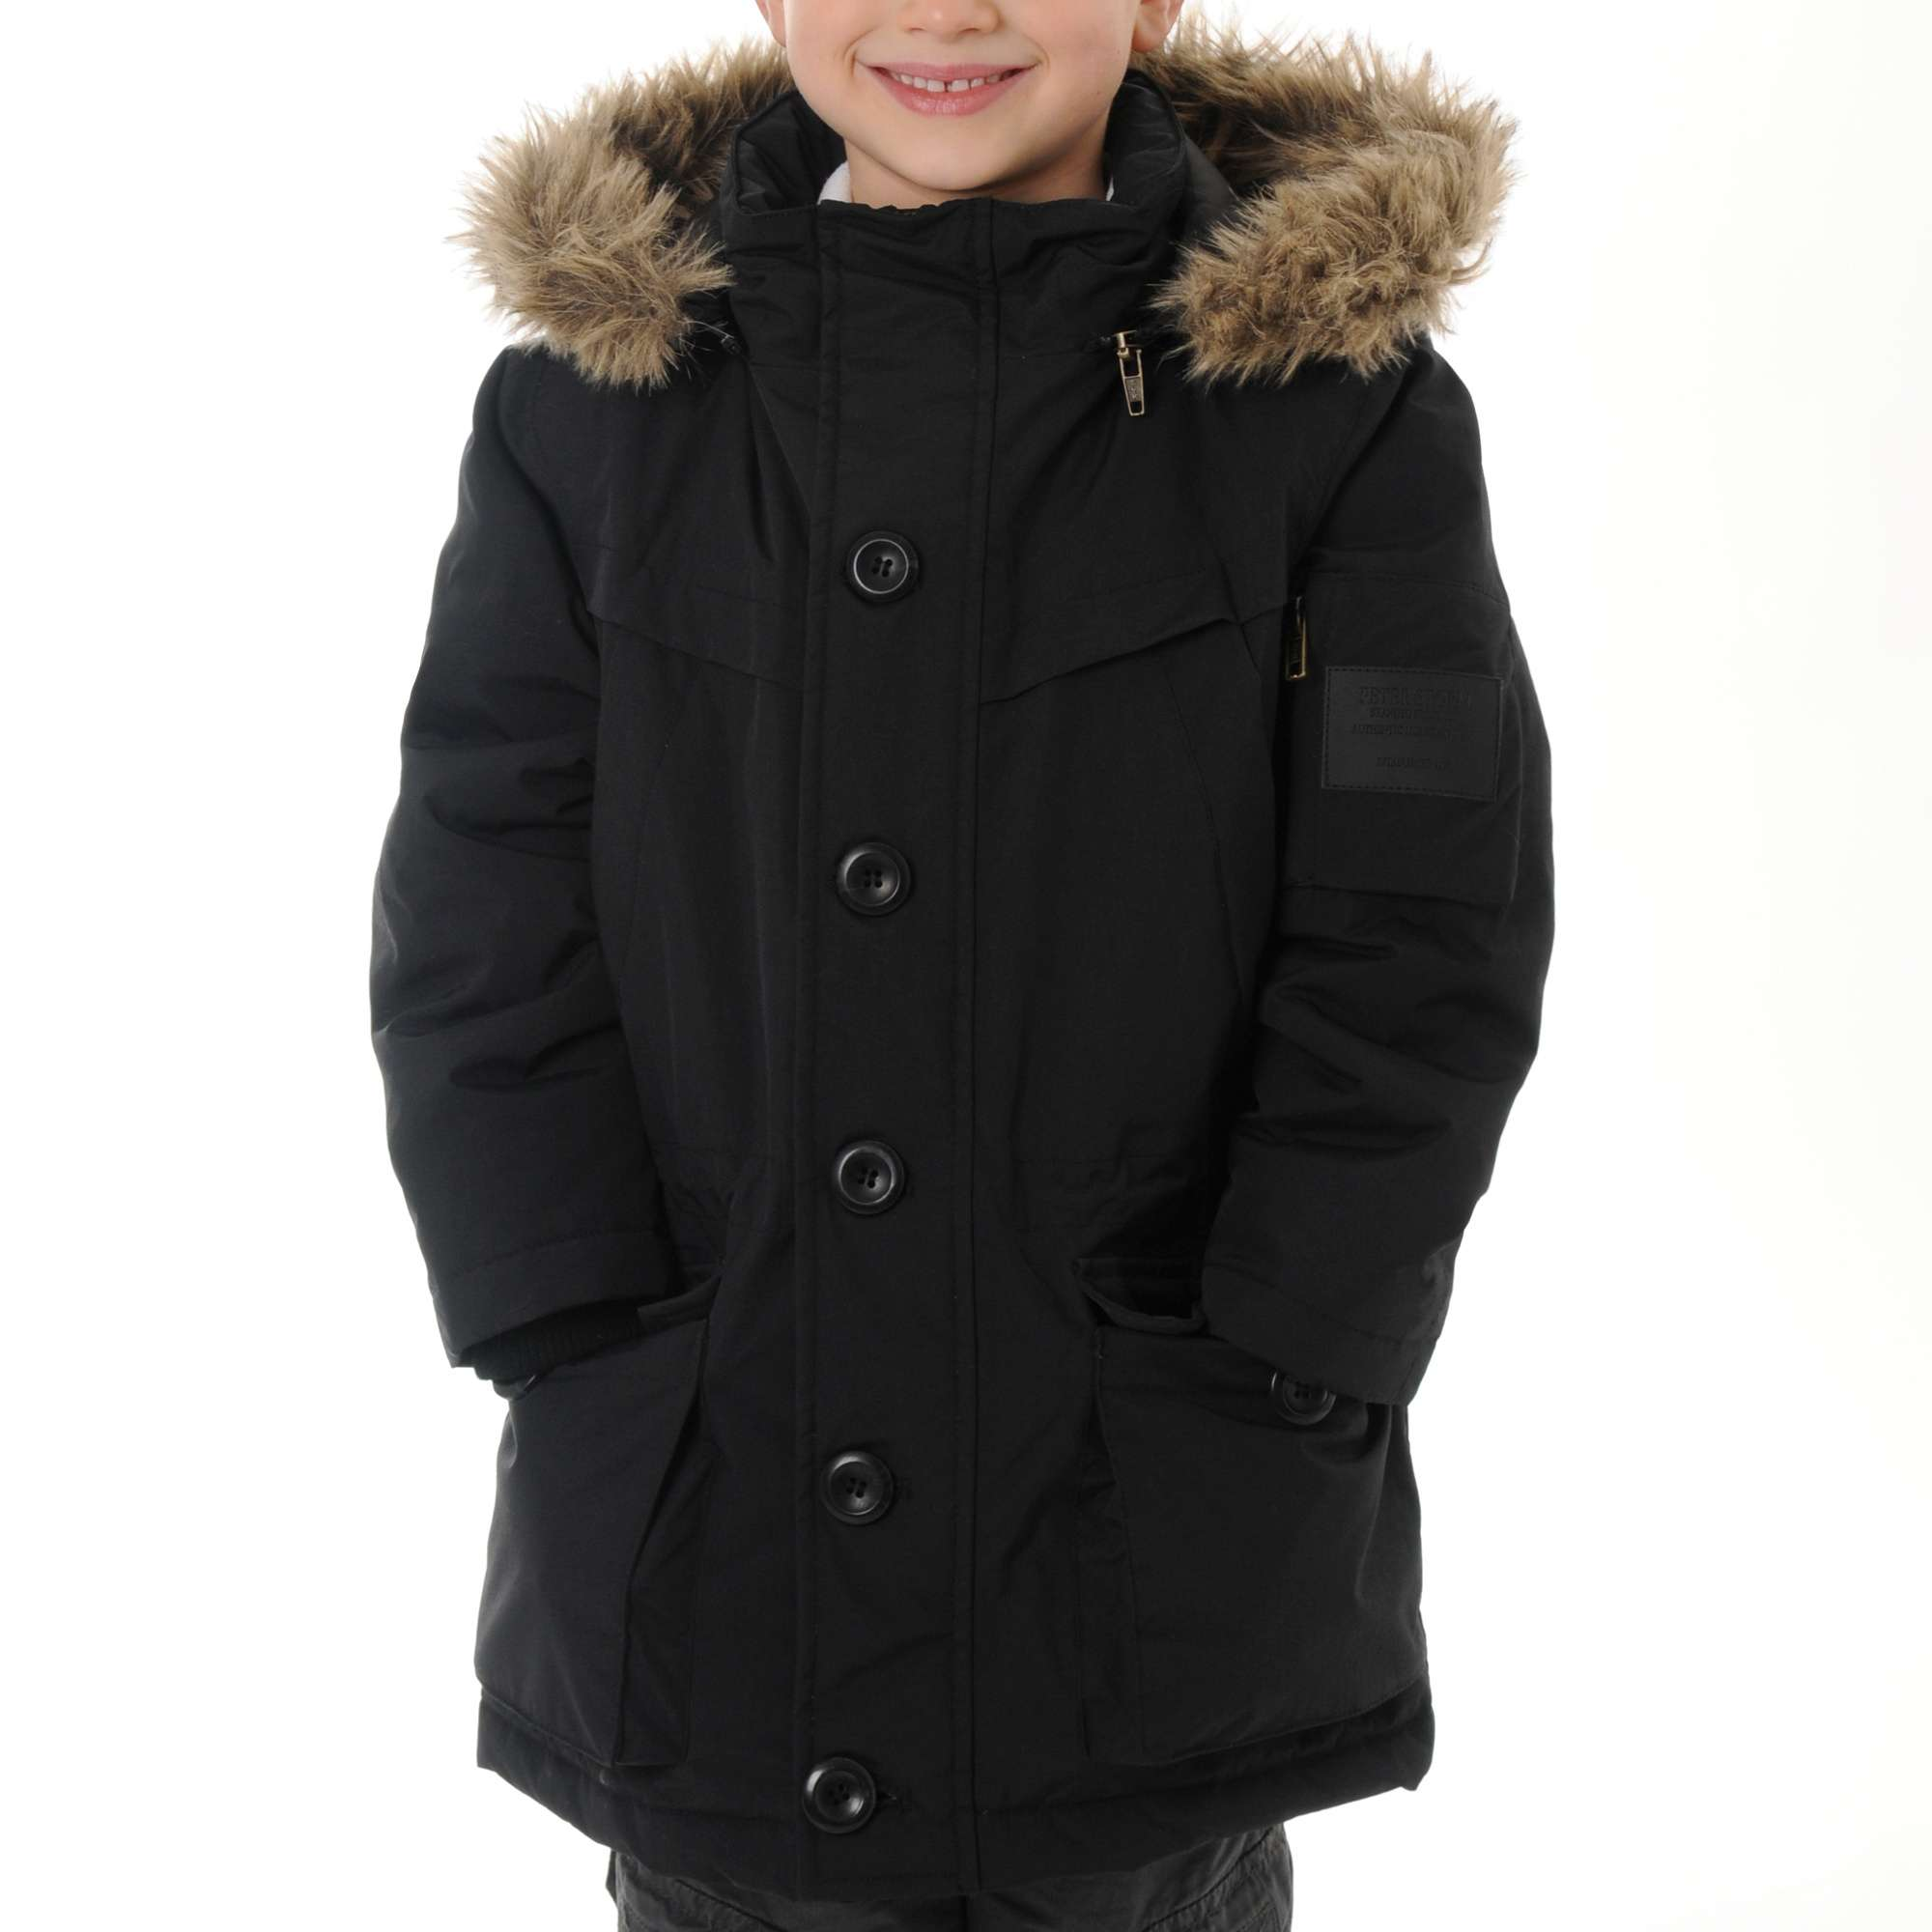 PETER STORM Boy's Parka Jacket